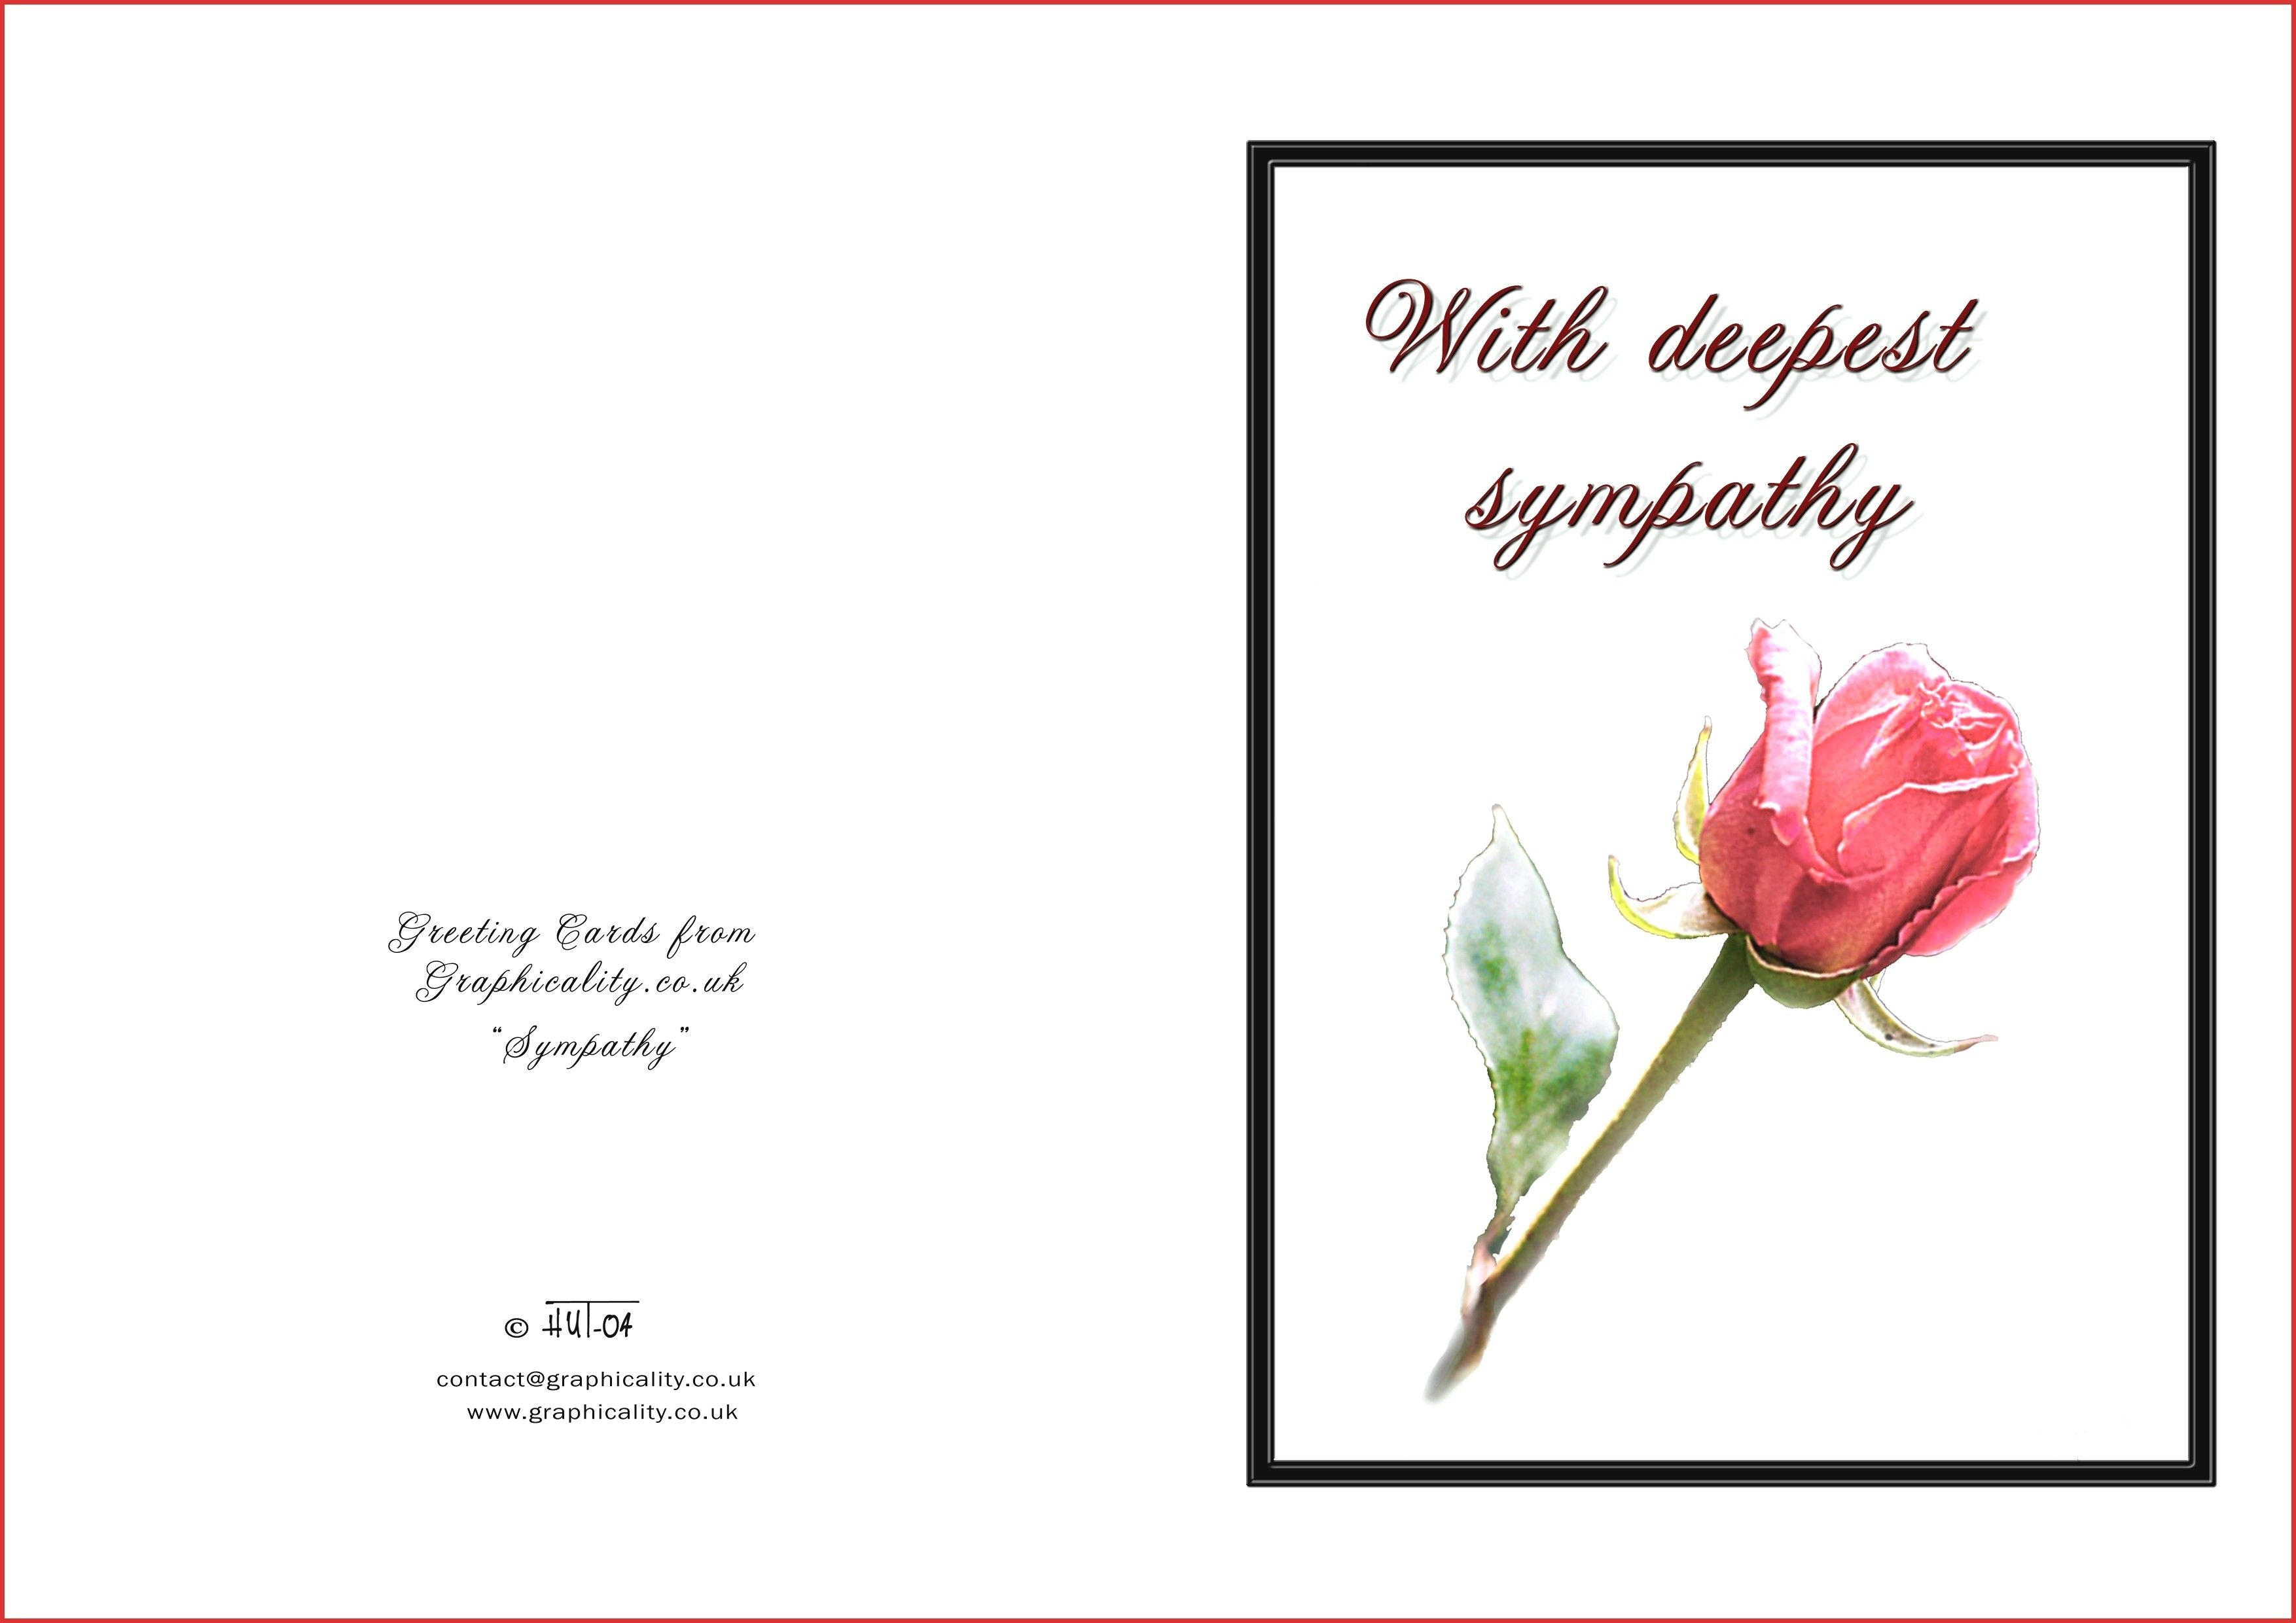 Printable Sympathy Cards - Hashtag Bg - Free Printable Sympathy Cards For Dogs